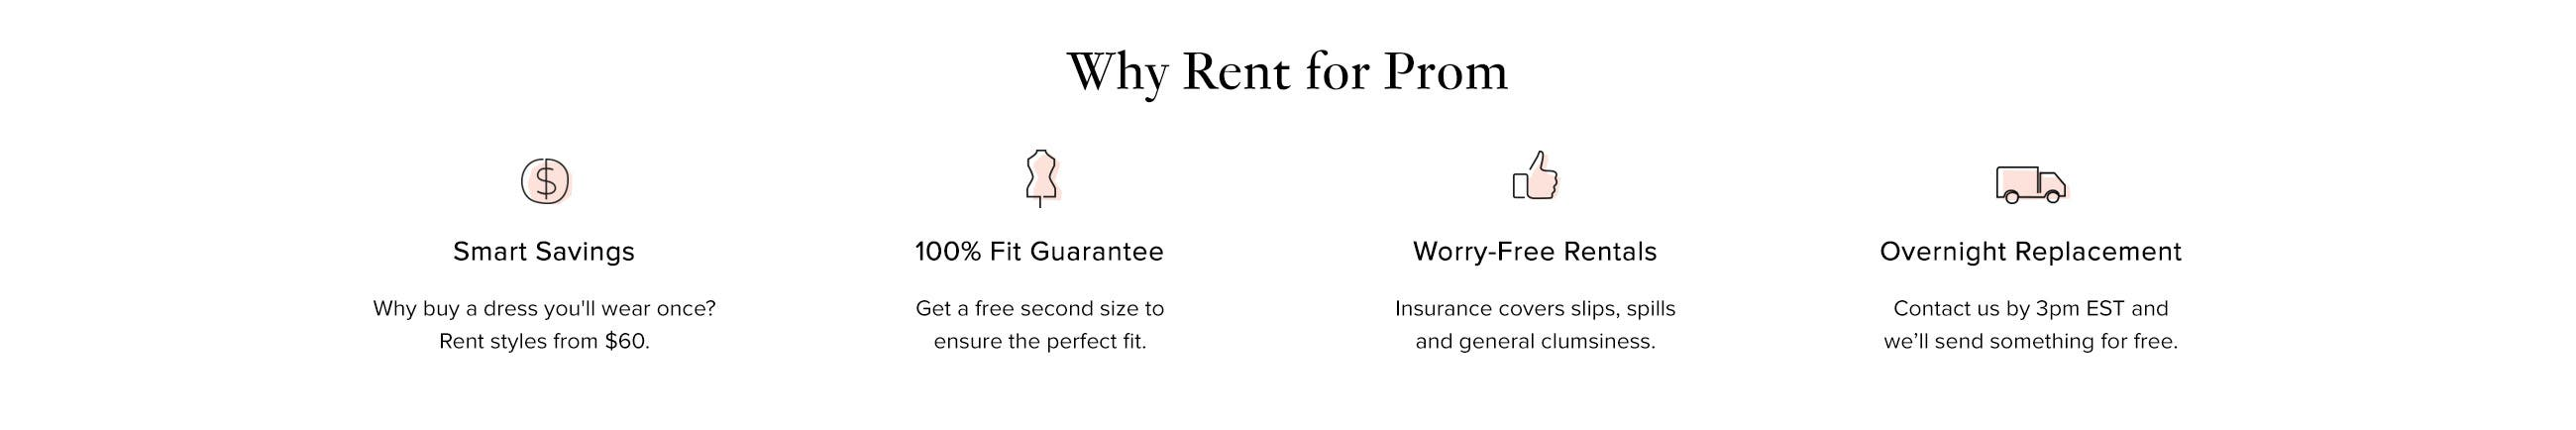 Why Rent your Dress for Prom? Smart Savings. 100% Fit Guarantee. Worry-Free Rentals. Free Backup Size,